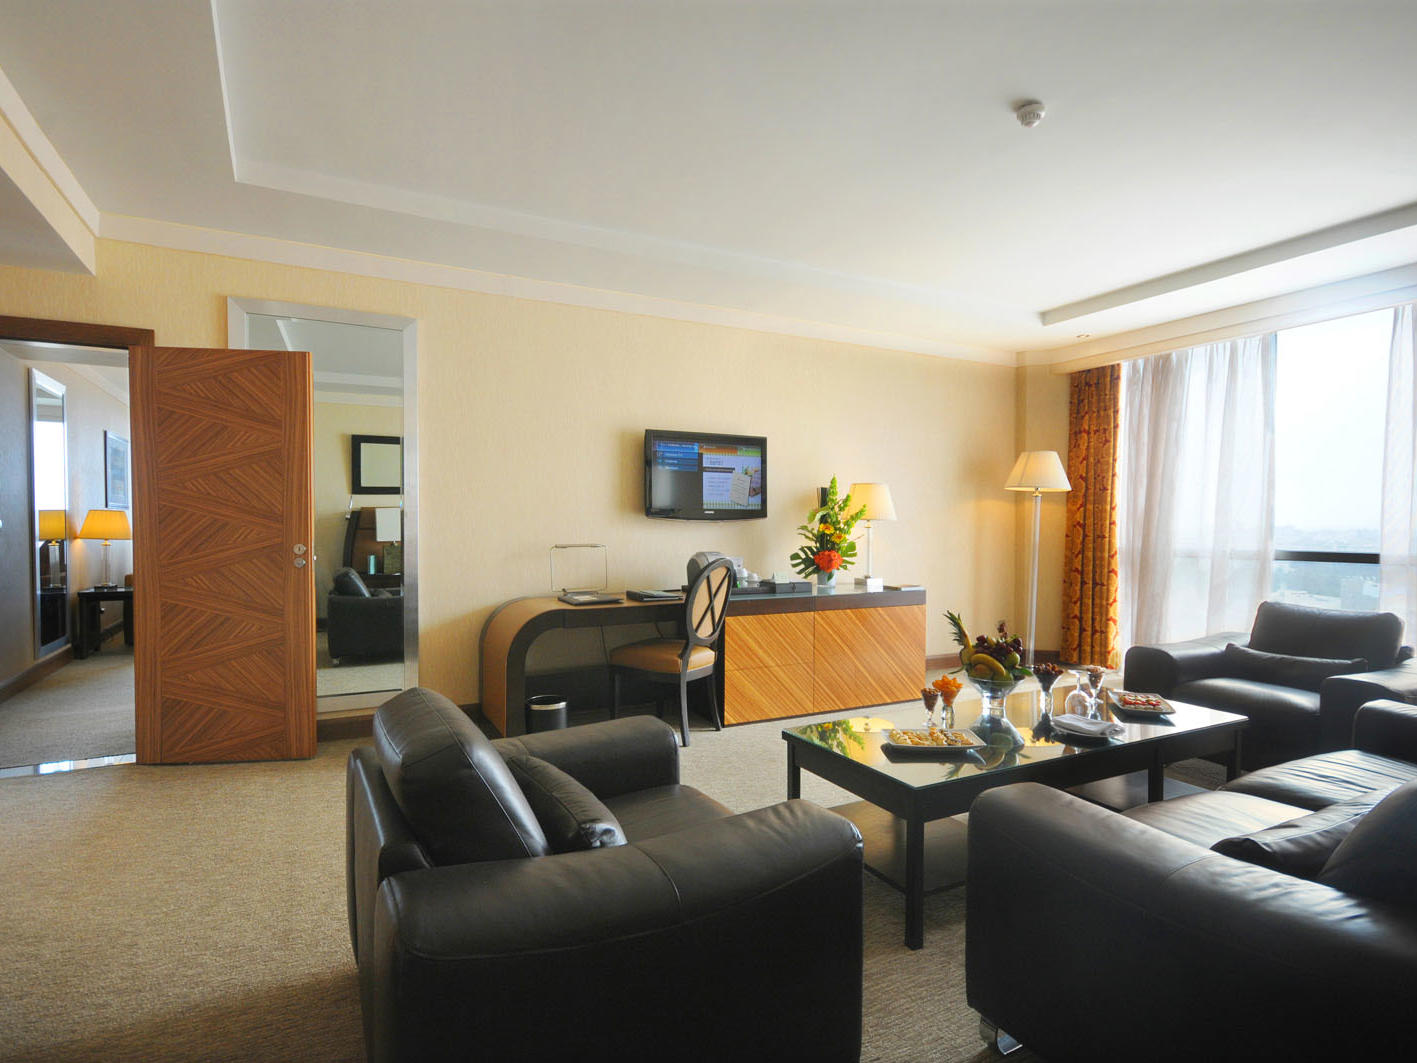 Diplomatic Suite at Kenzi Tower Hotel in Casablanca, Morocco